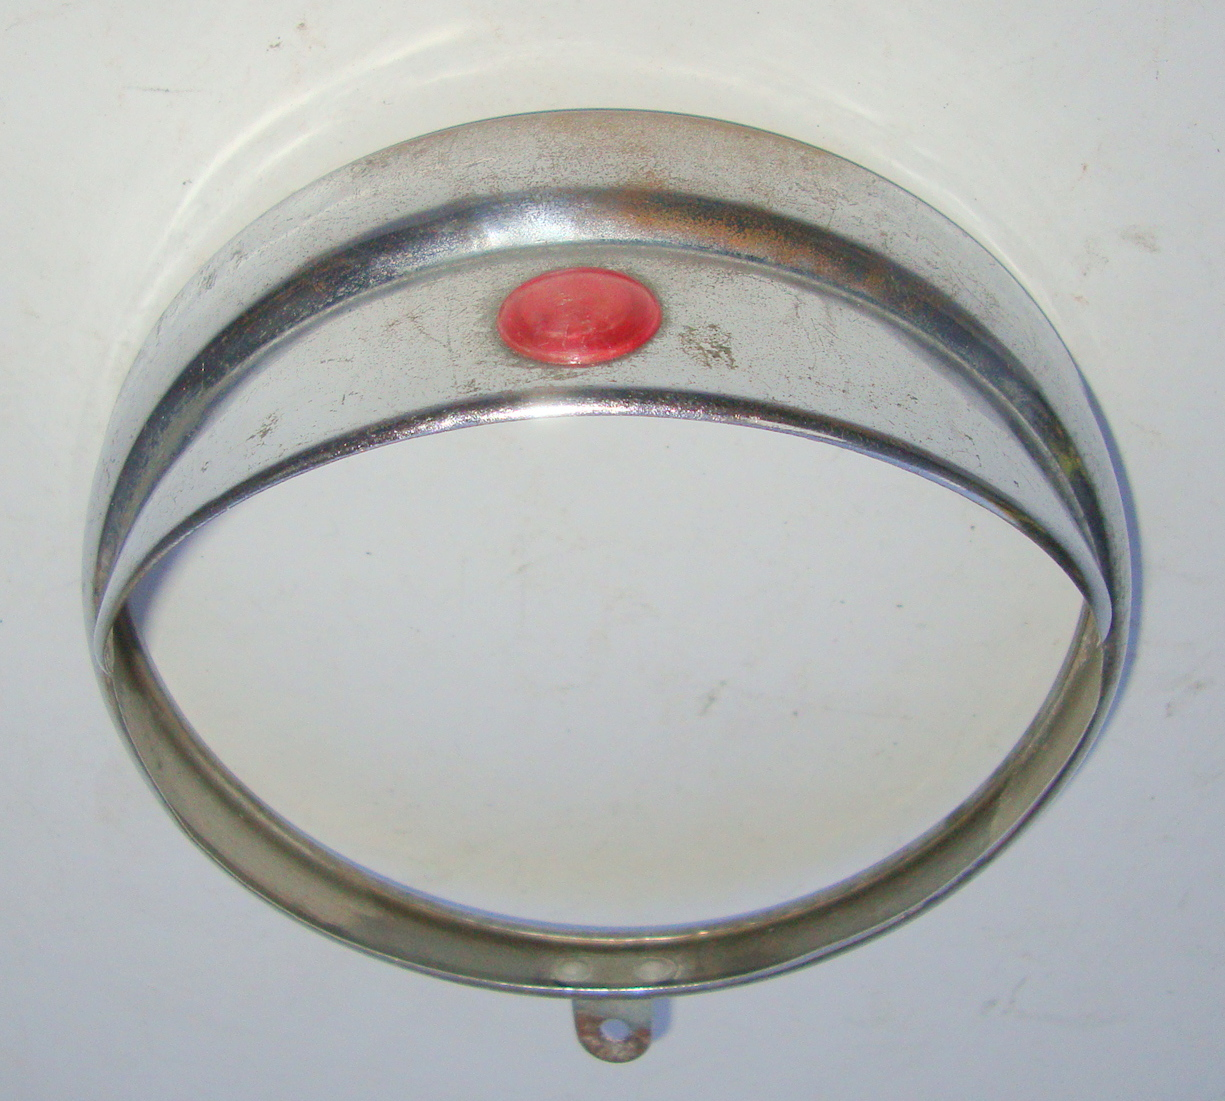 Rim for headlamp with visor, Vespa 125 VM1 > VM2 / VN1 / Ape 150 AB1T > AB3T